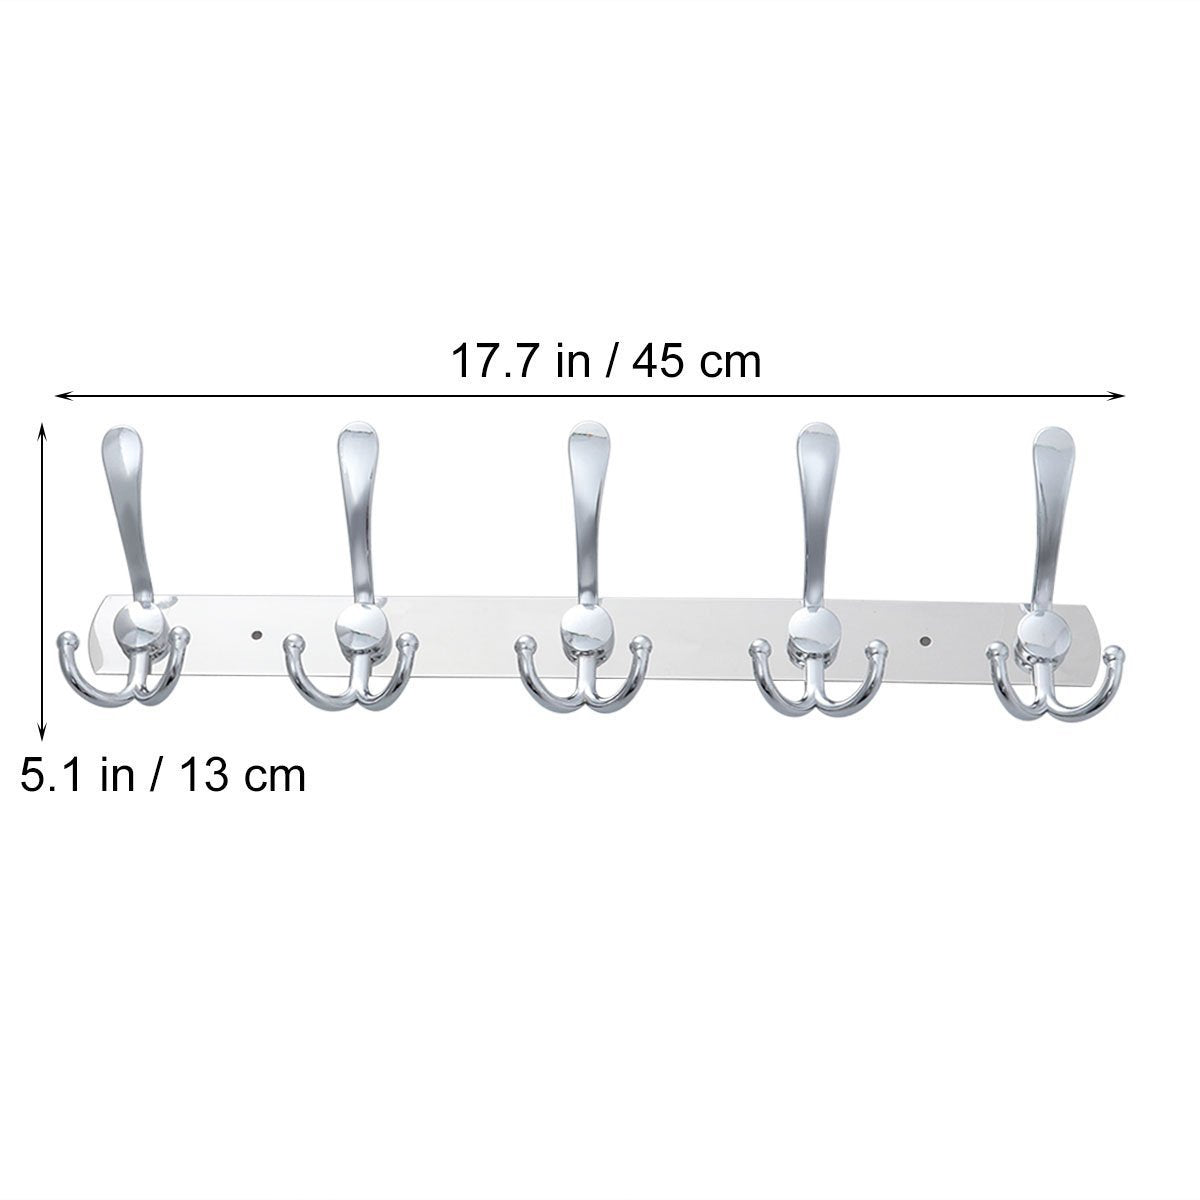 Get toymytoy 2pcs wall mounted coat hook 2 pack rack with 5 stainless steel hat hanger